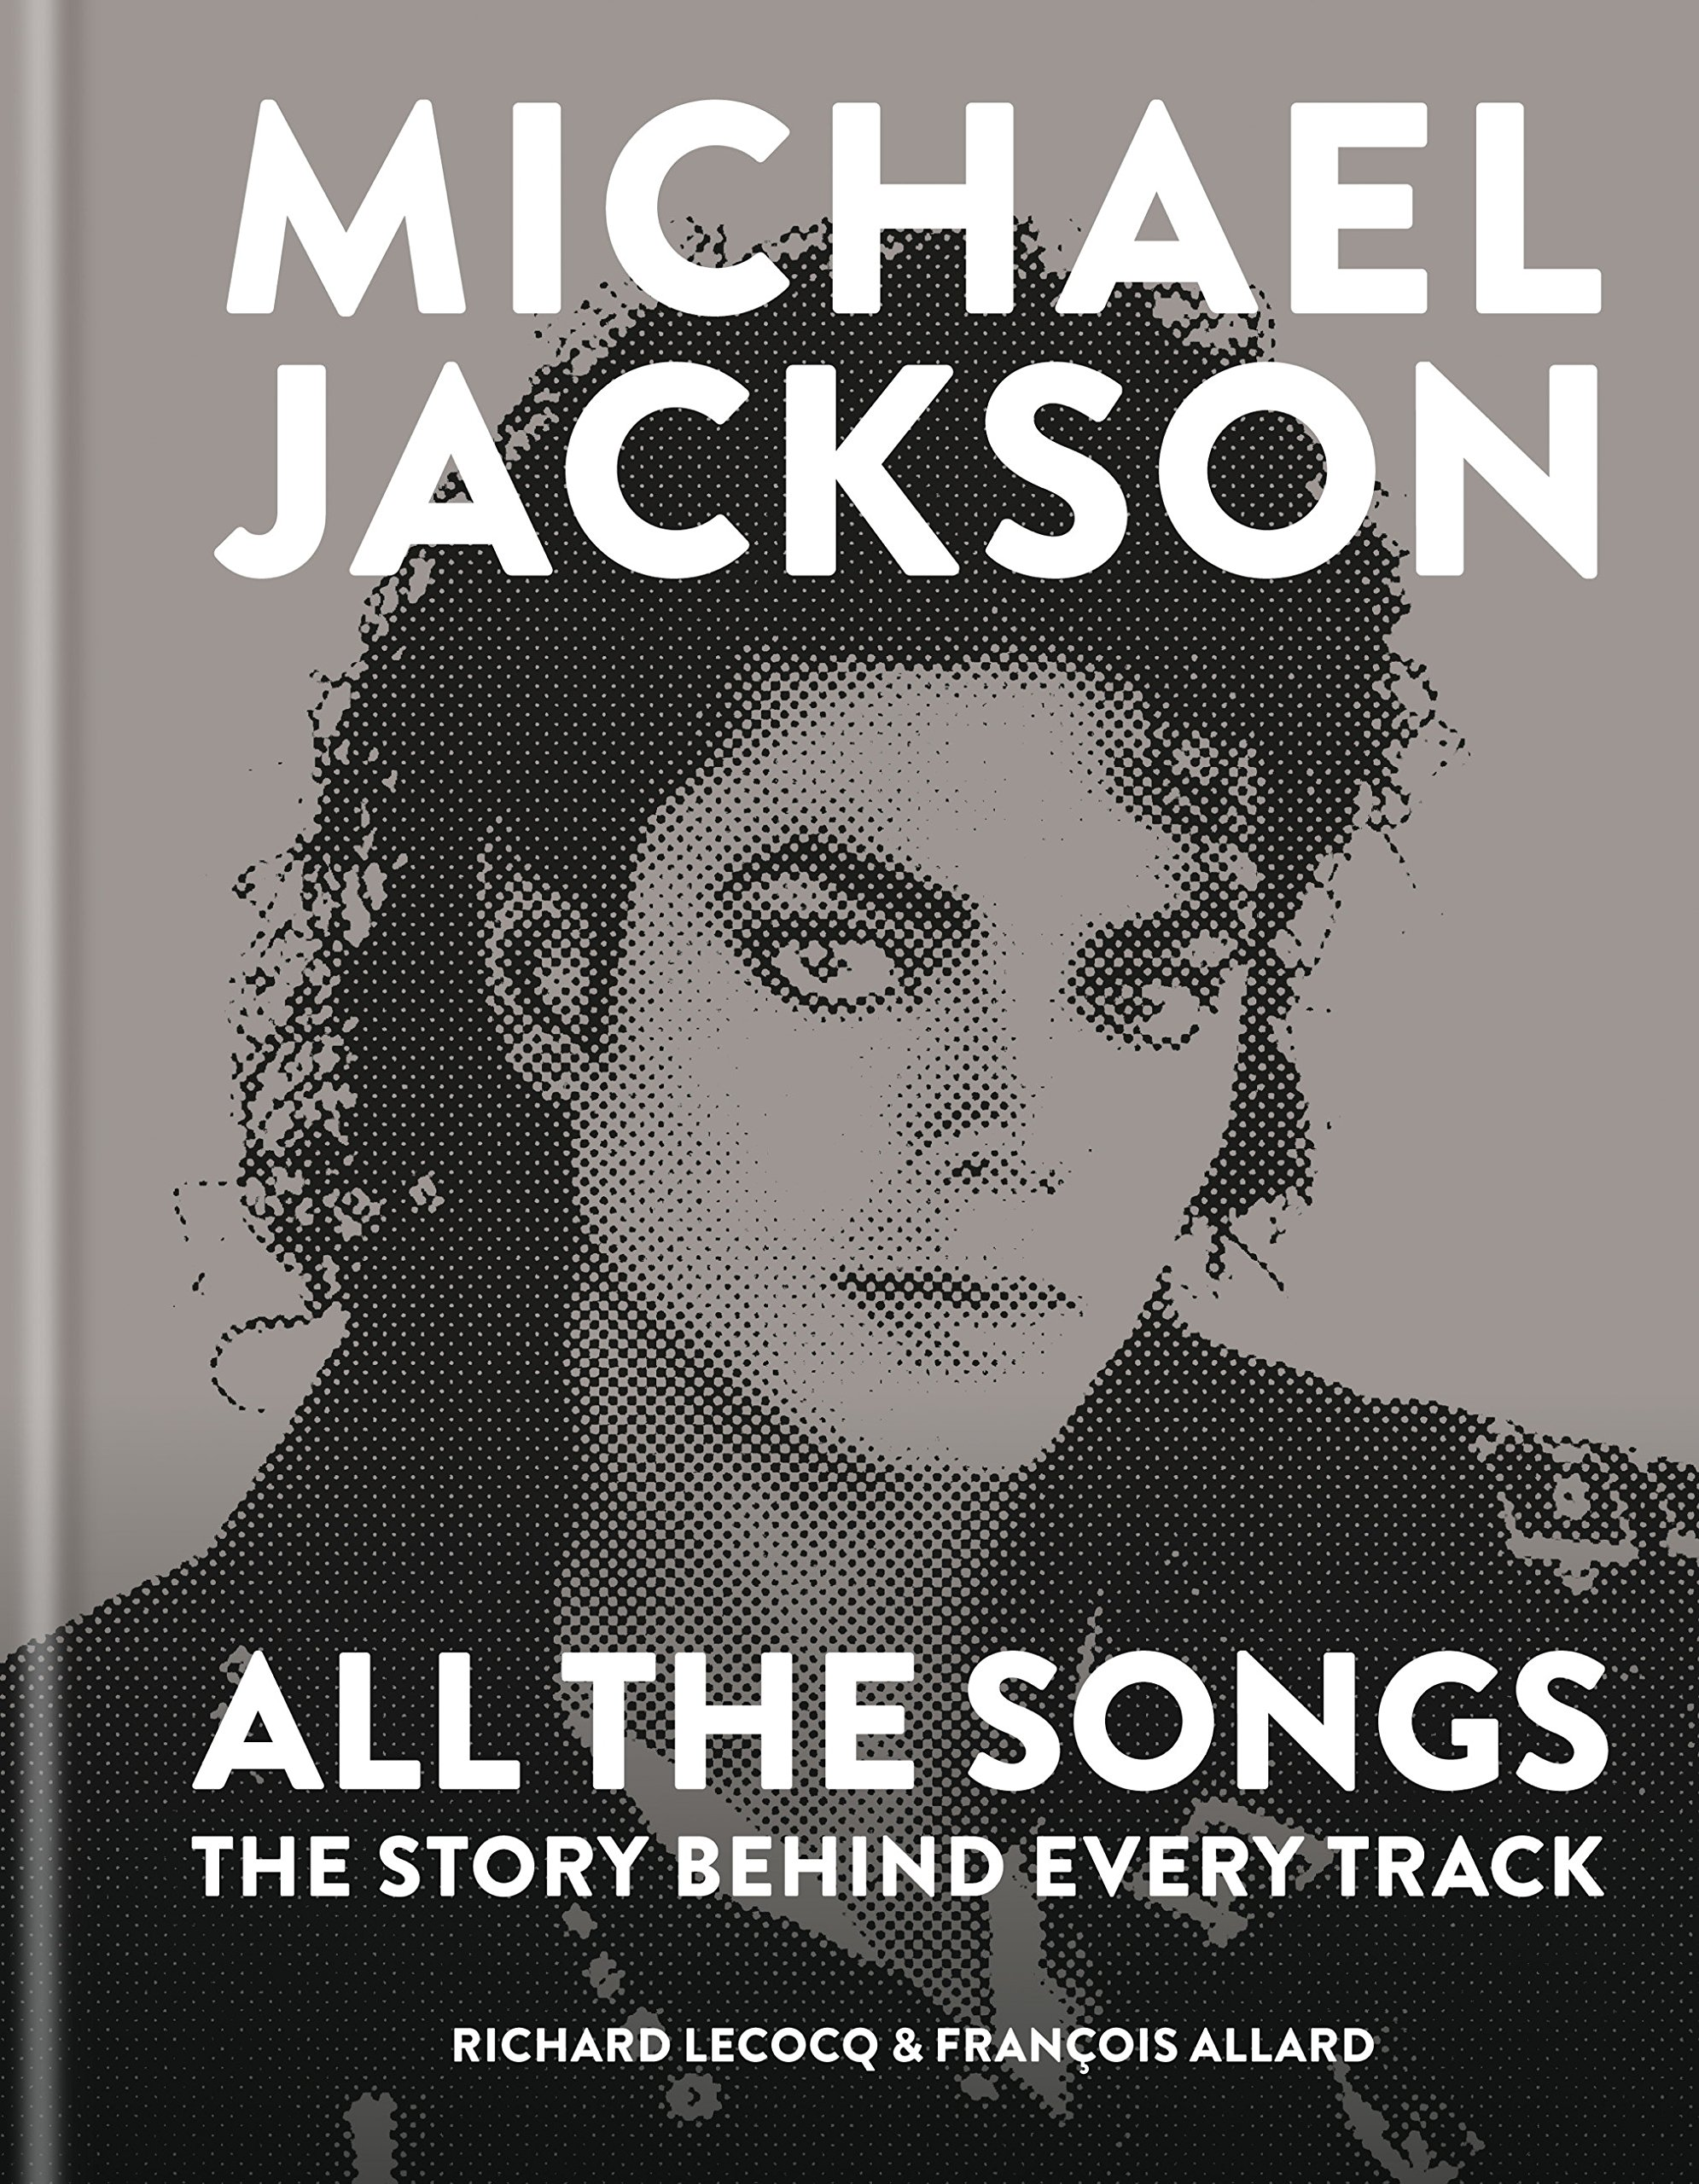 Michael Jackson  All The Songs  The Story Behind Every Track  English Edition